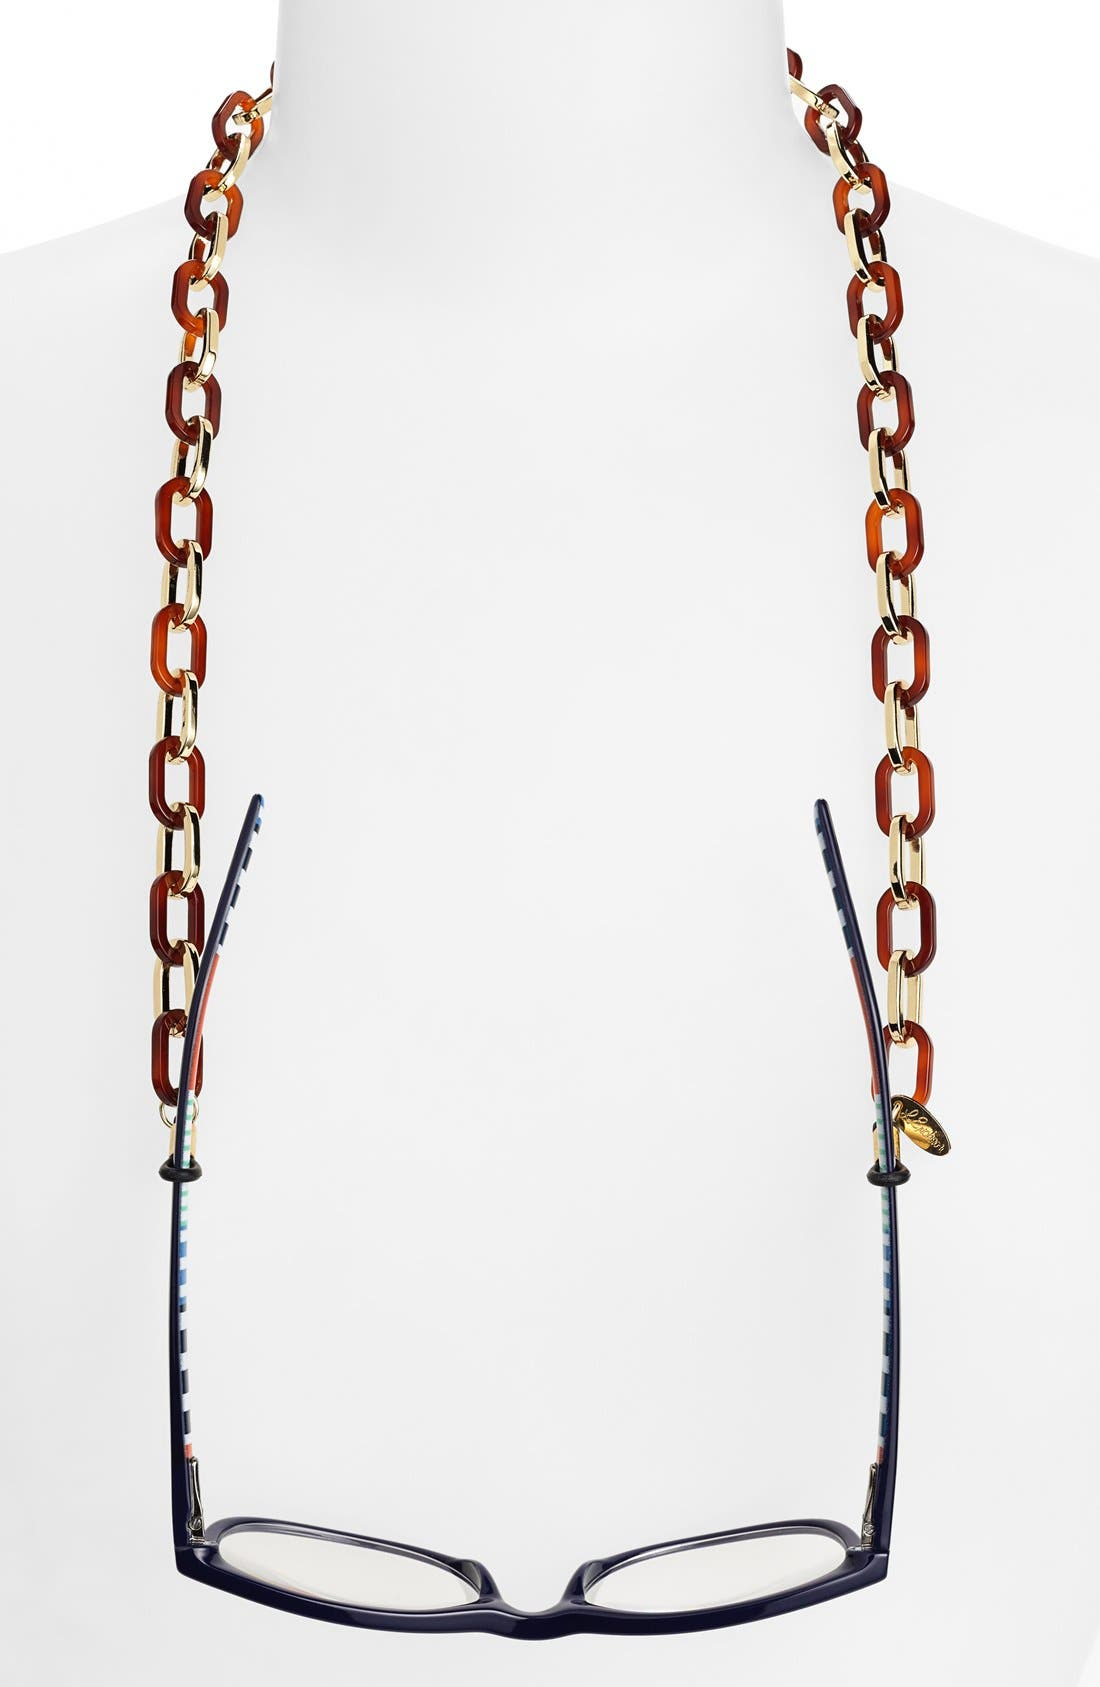 Alternate Image 1 Selected - L. Erickson 'Sarafine' Metal Link Eyewear Chain